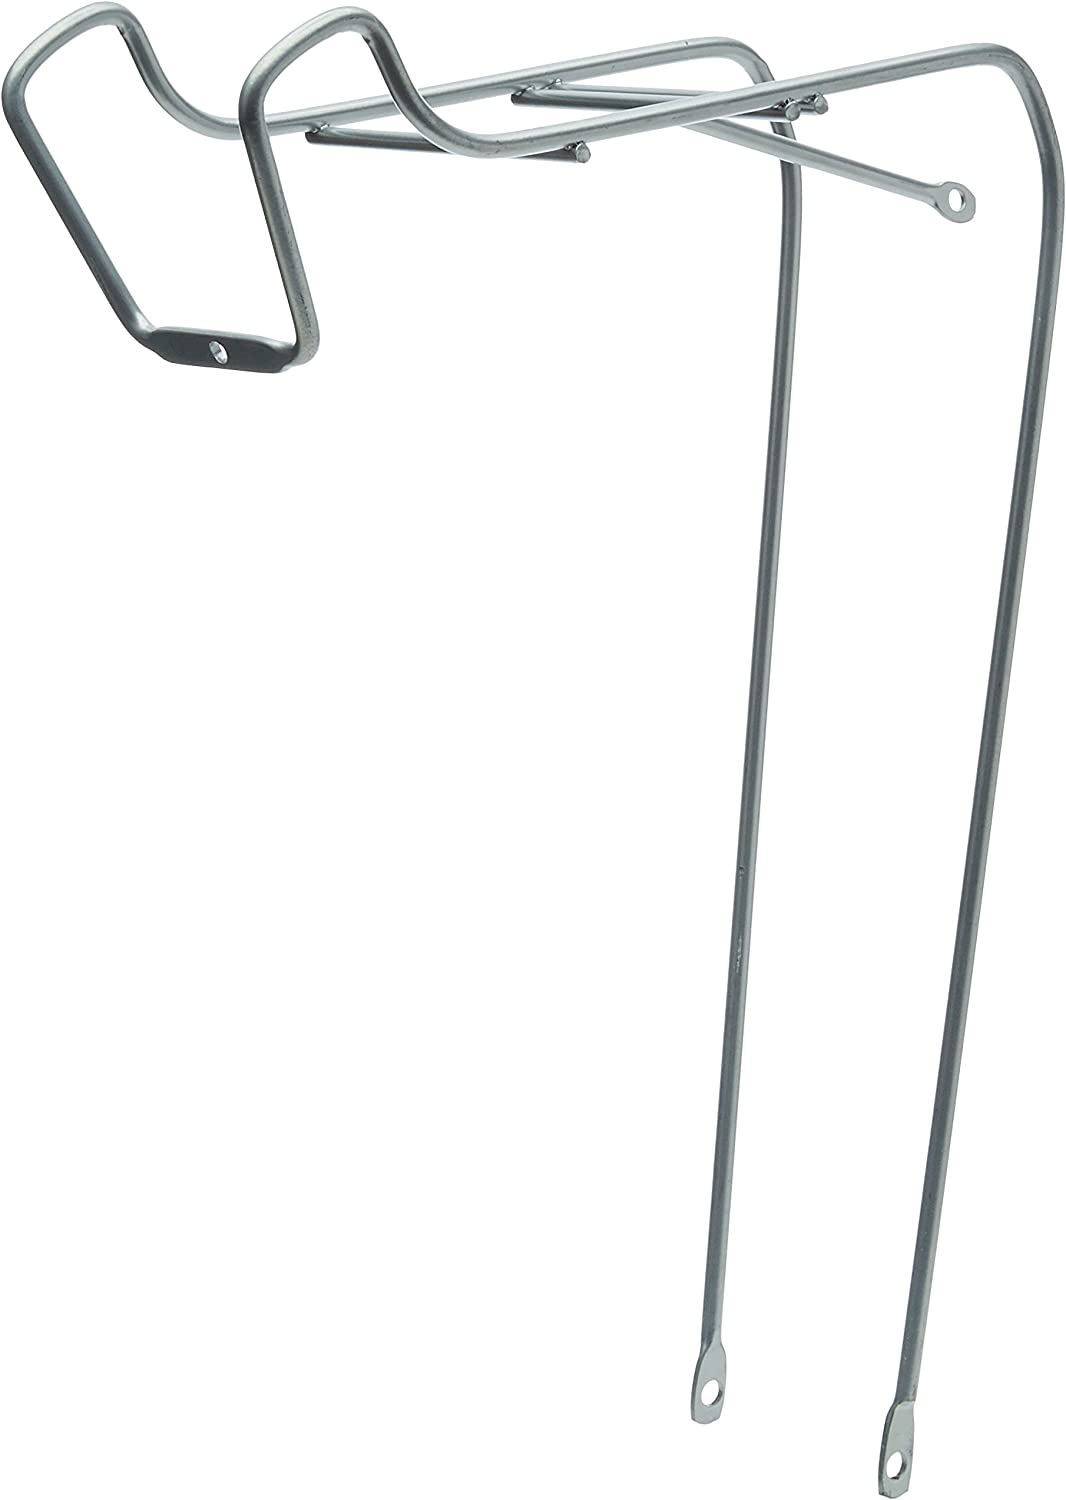 Bottari Bike 96890 Car Rack and Protection Front Carrier for Bike-Silver